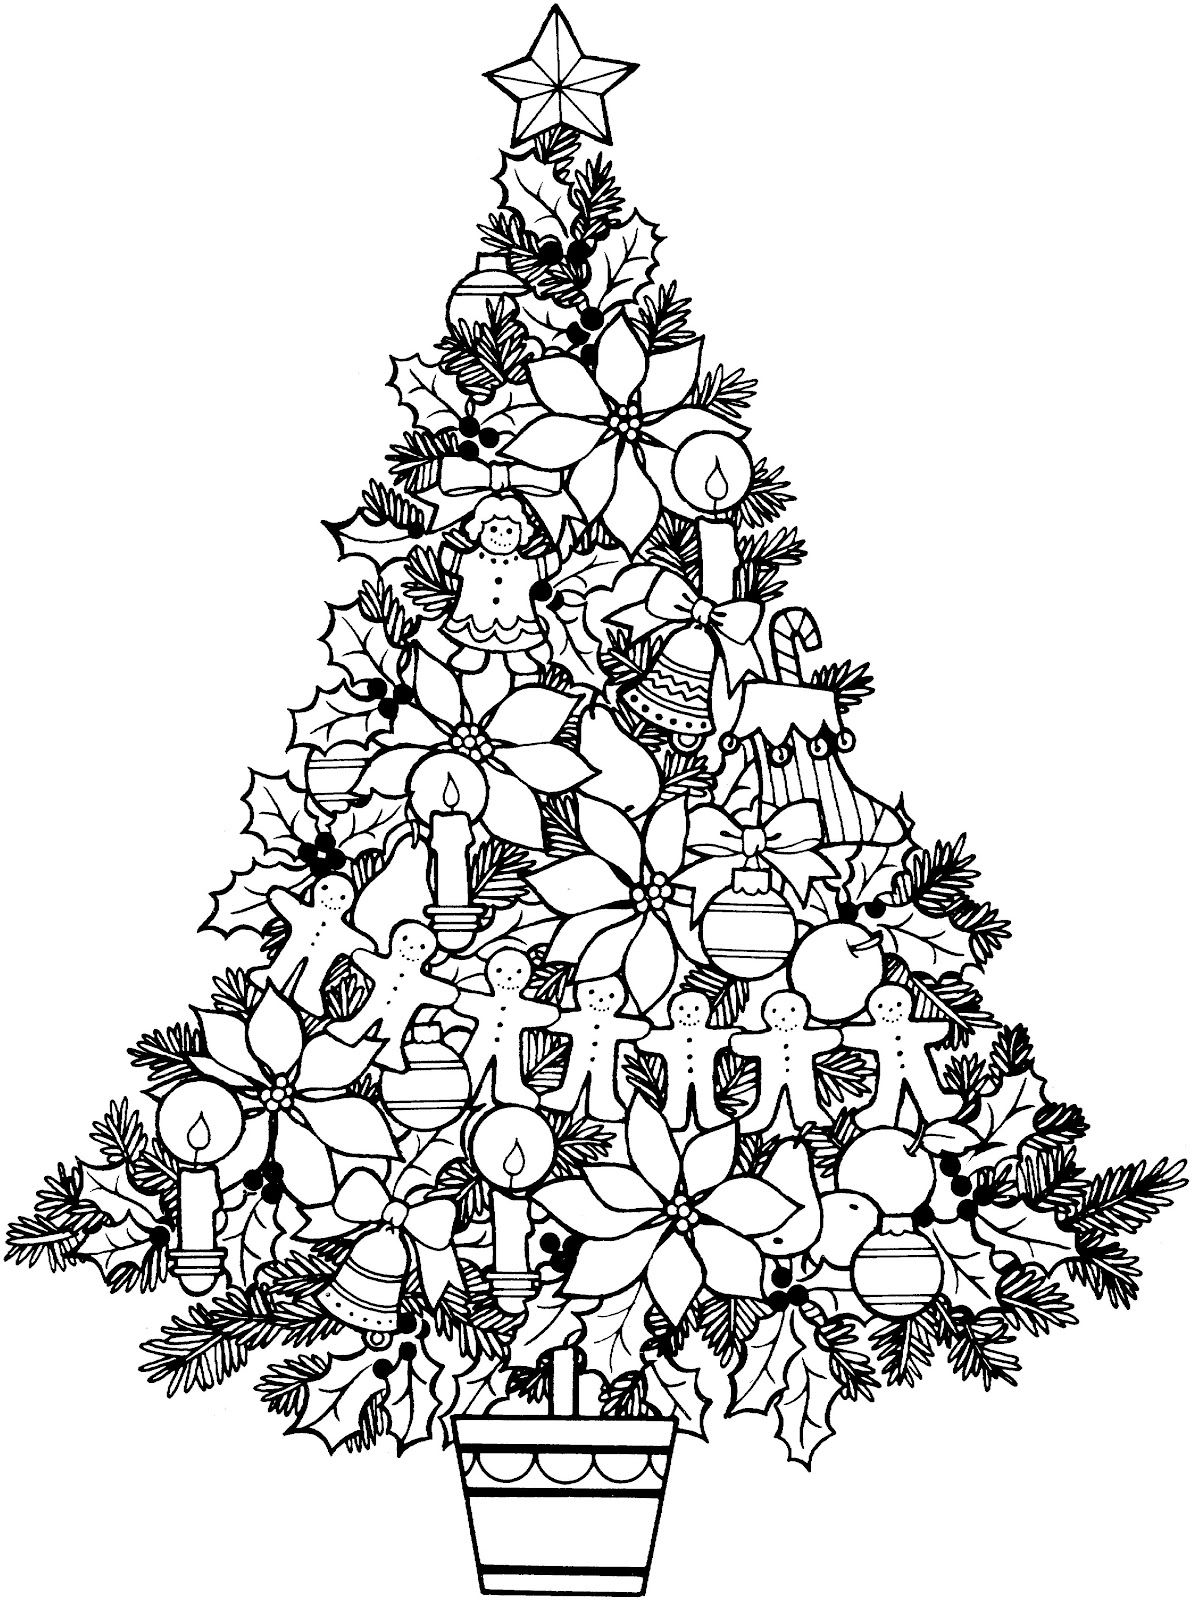 christmas icons black and white | Coloring pages :) | Pinterest ...